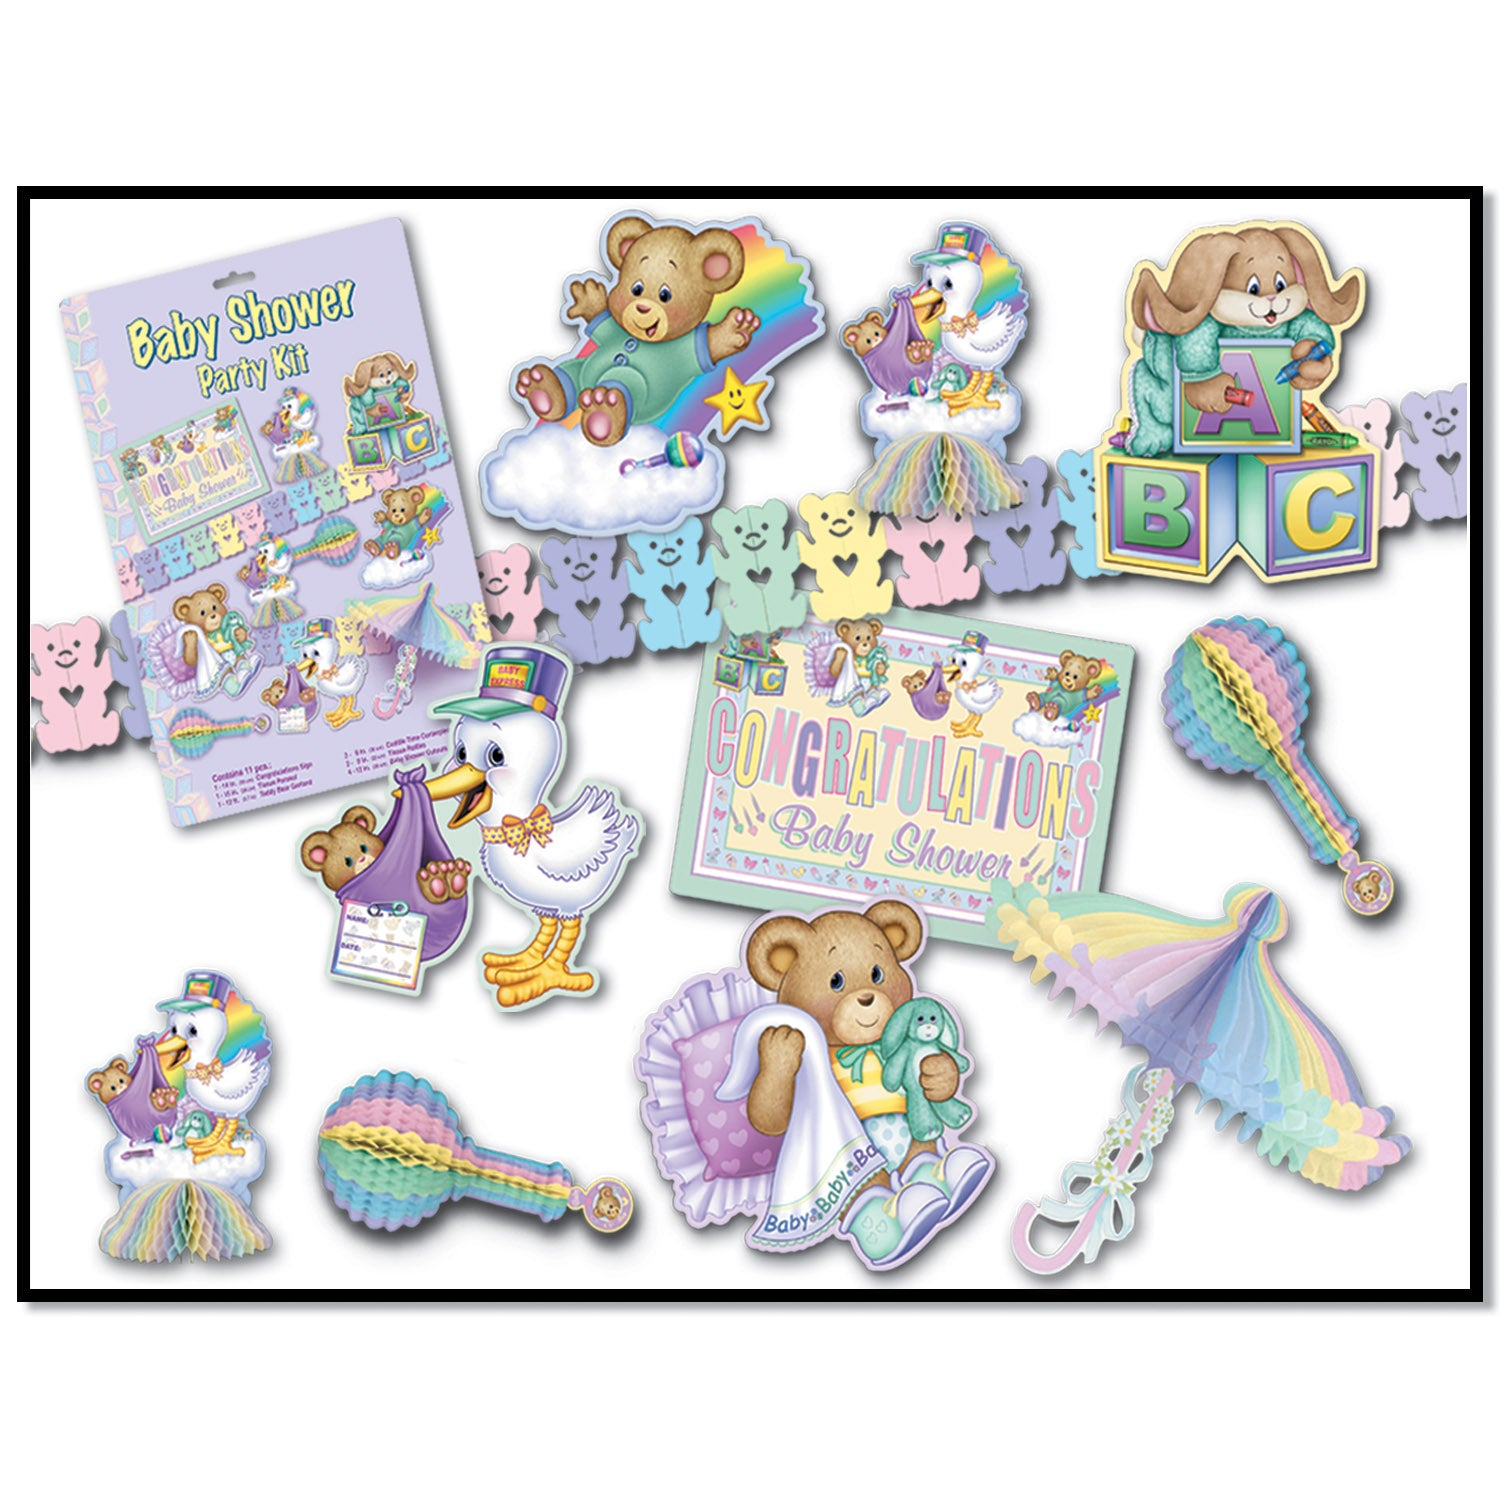 Cuddle-Time Party Kit by Beistle - Baby Shower Theme Decorations